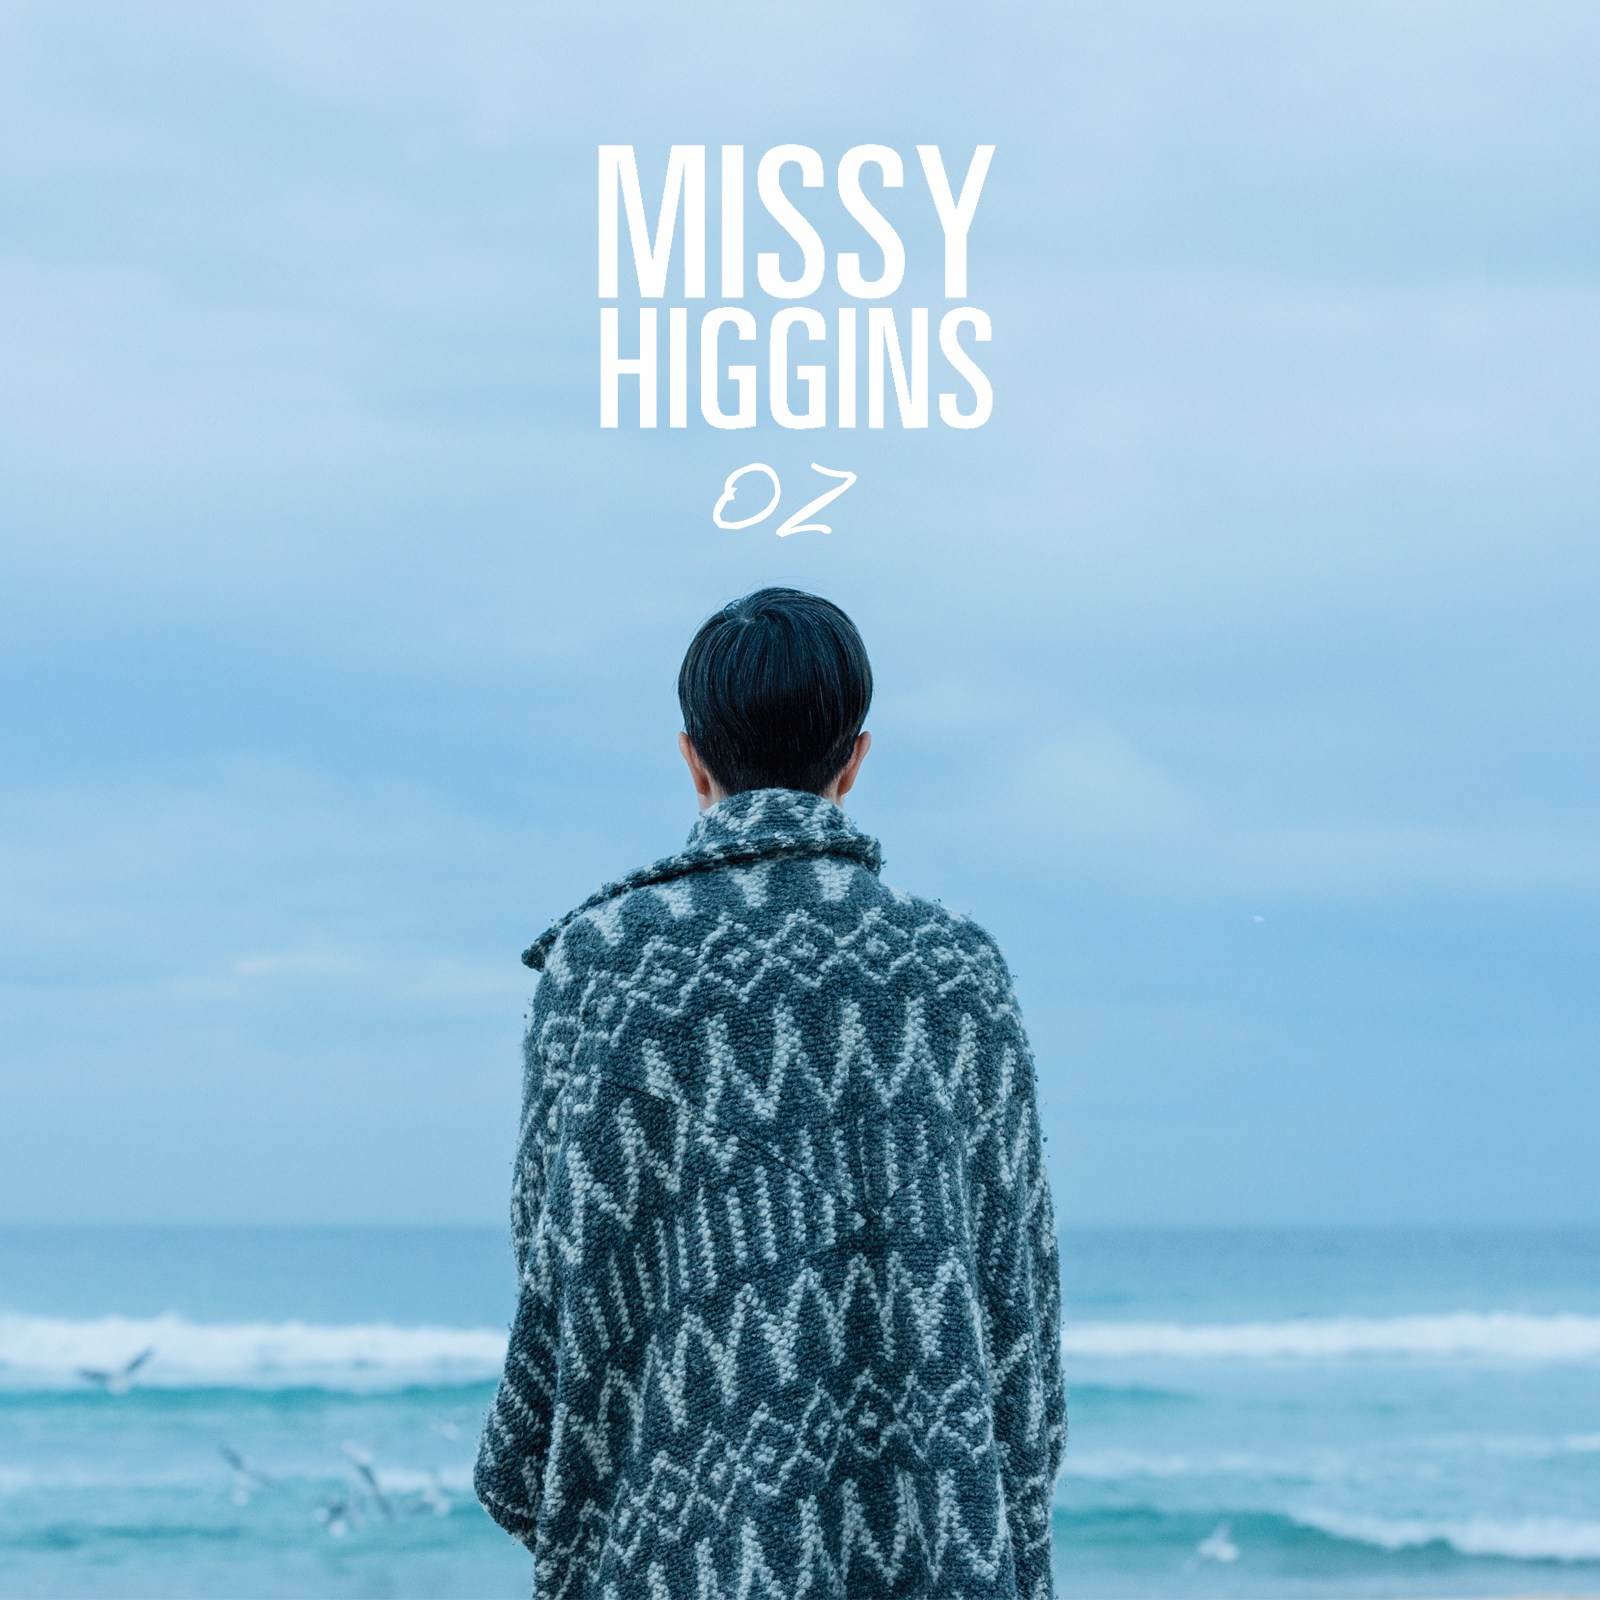 Missy Higgins 'Oz' Album Cover